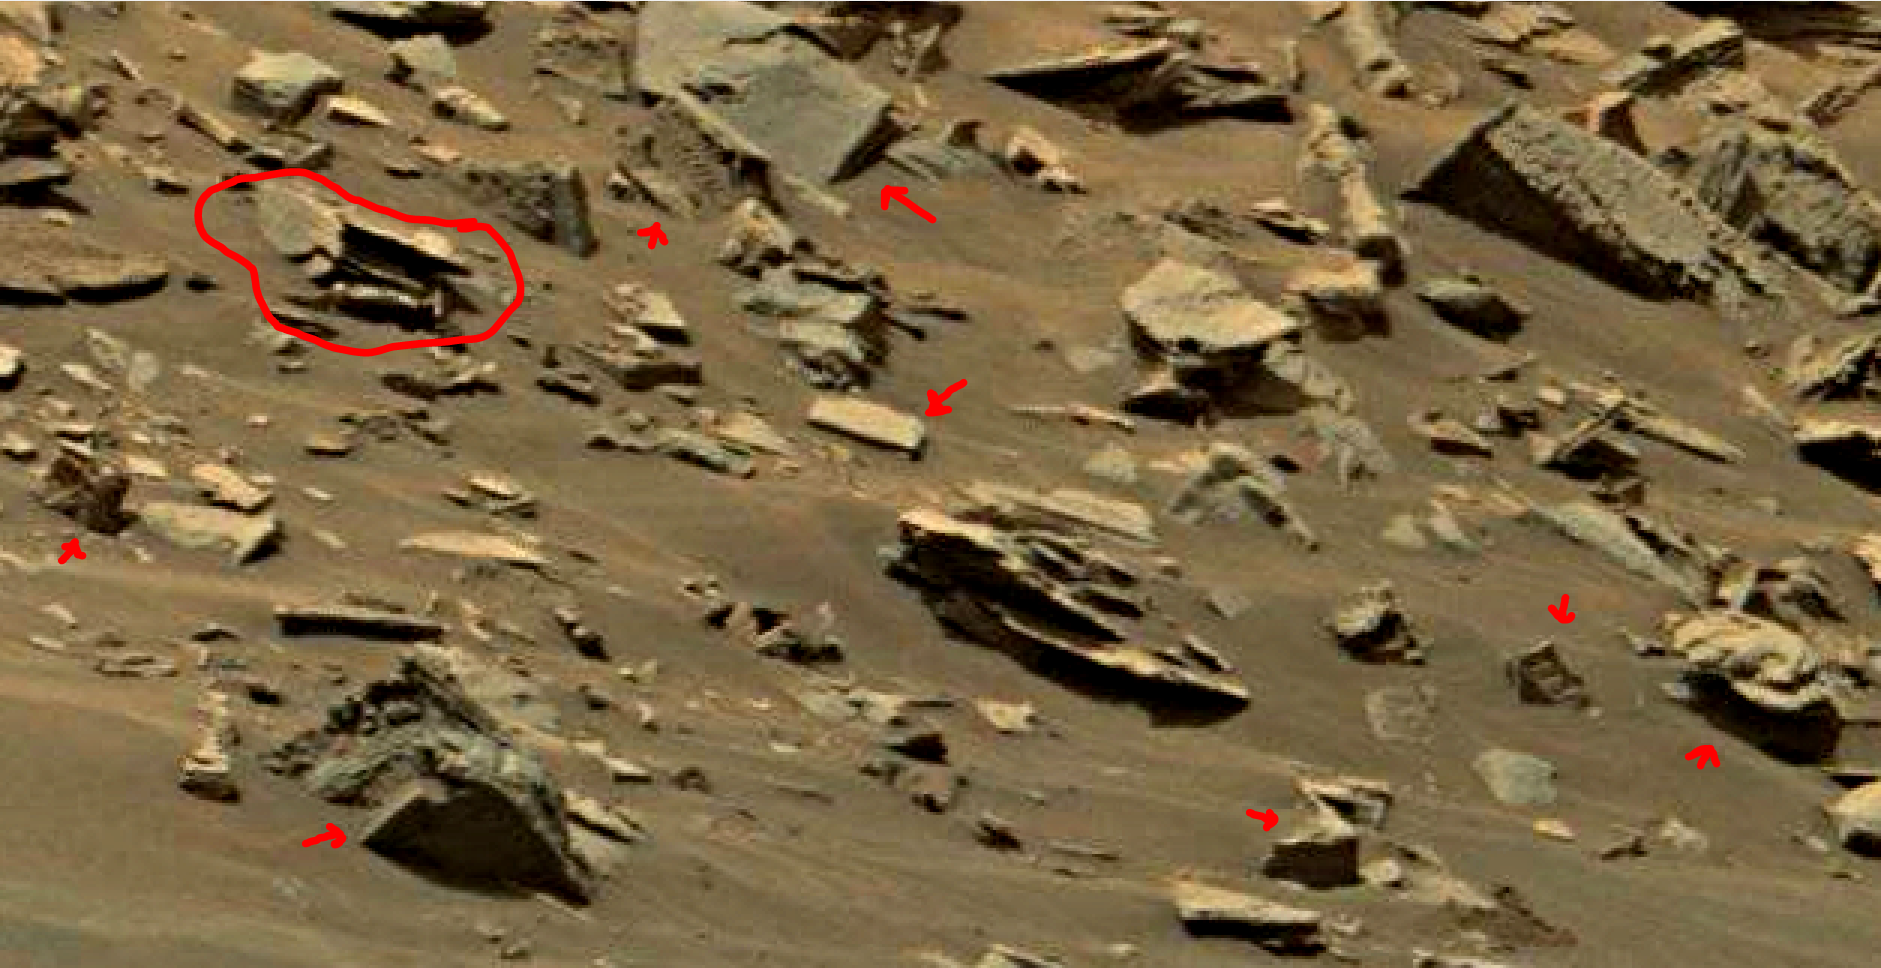 mars sol 1447 anomaly artifacts 4a - was life on mars